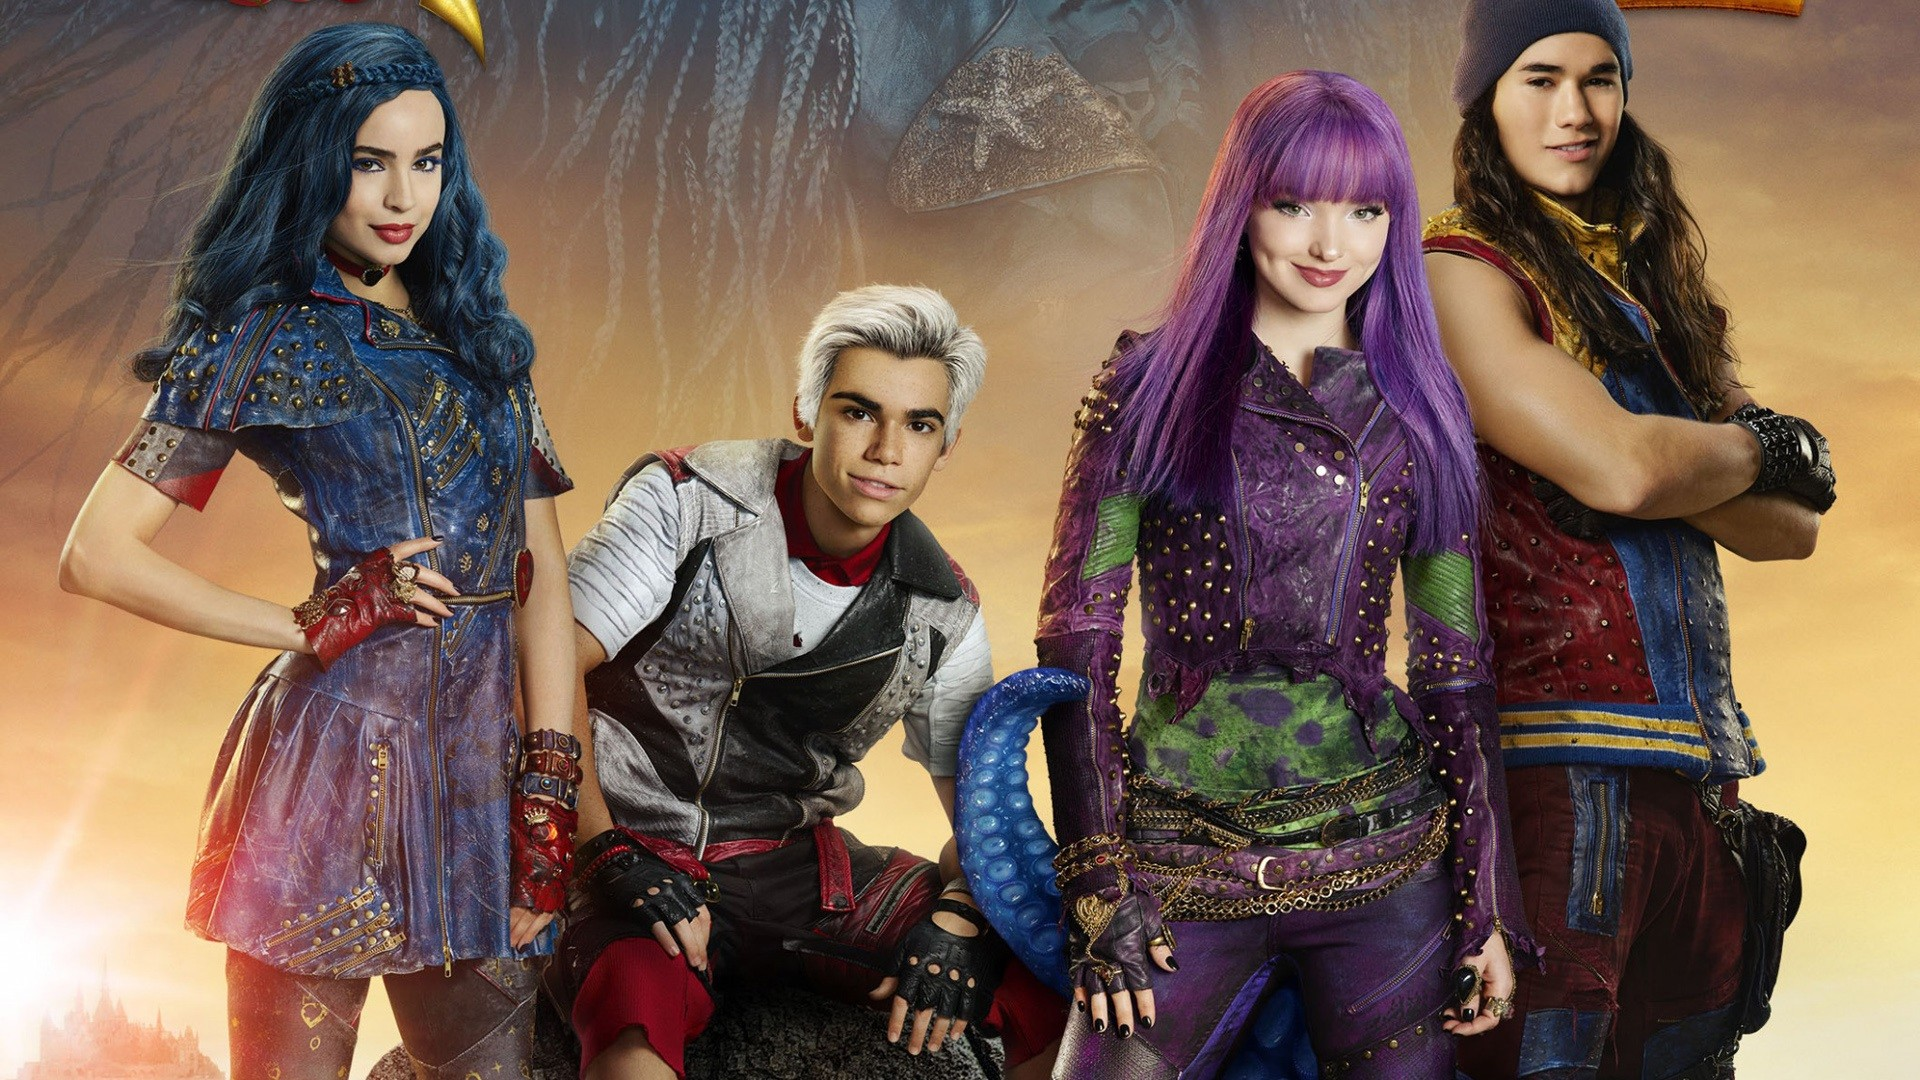 Descendants Wallpapers 62 images 1920x1080